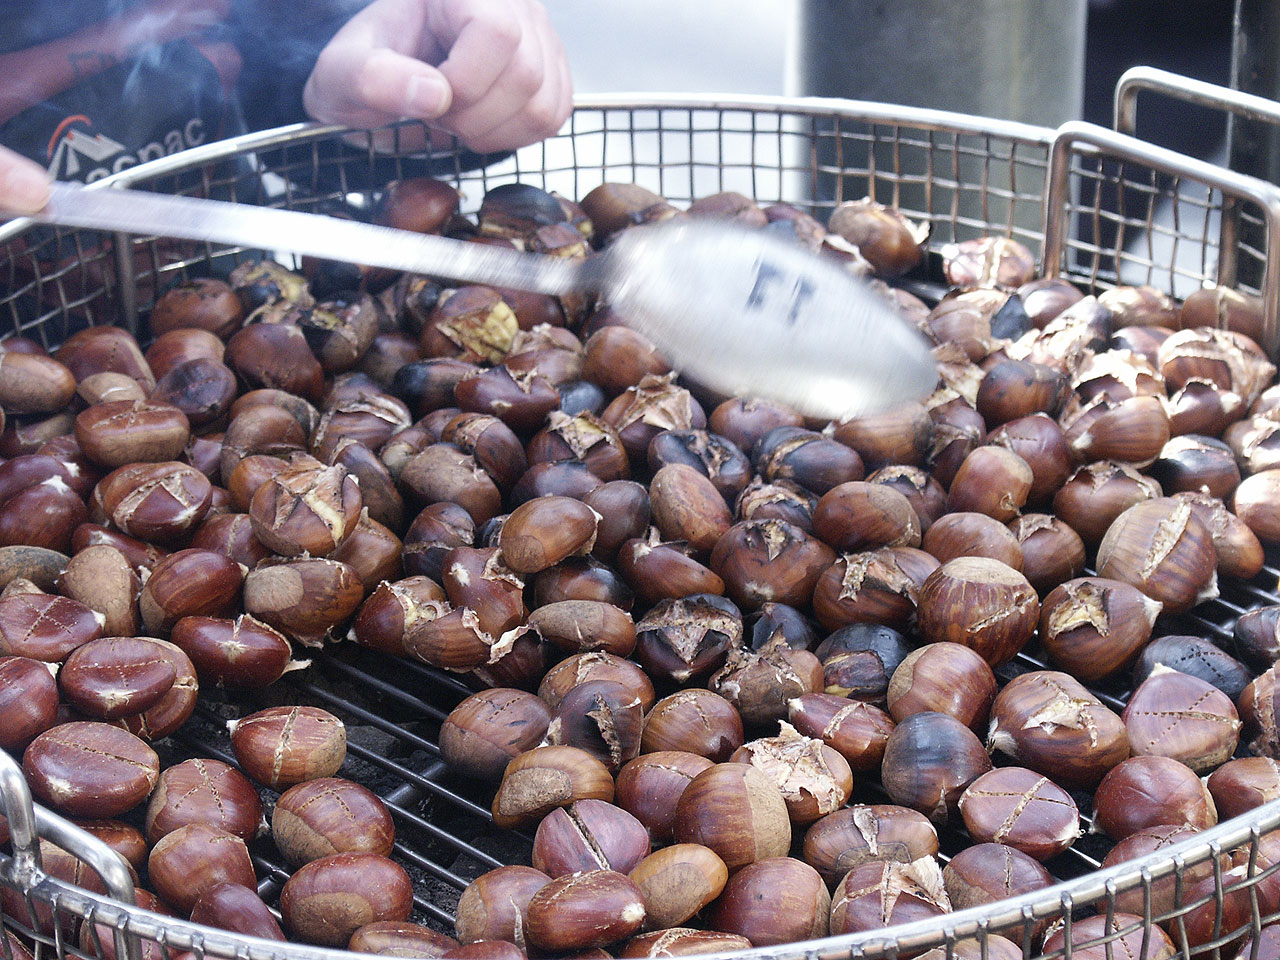 File:Chestnuts roasted.jpg - Wikipedia, the free encyclopedia